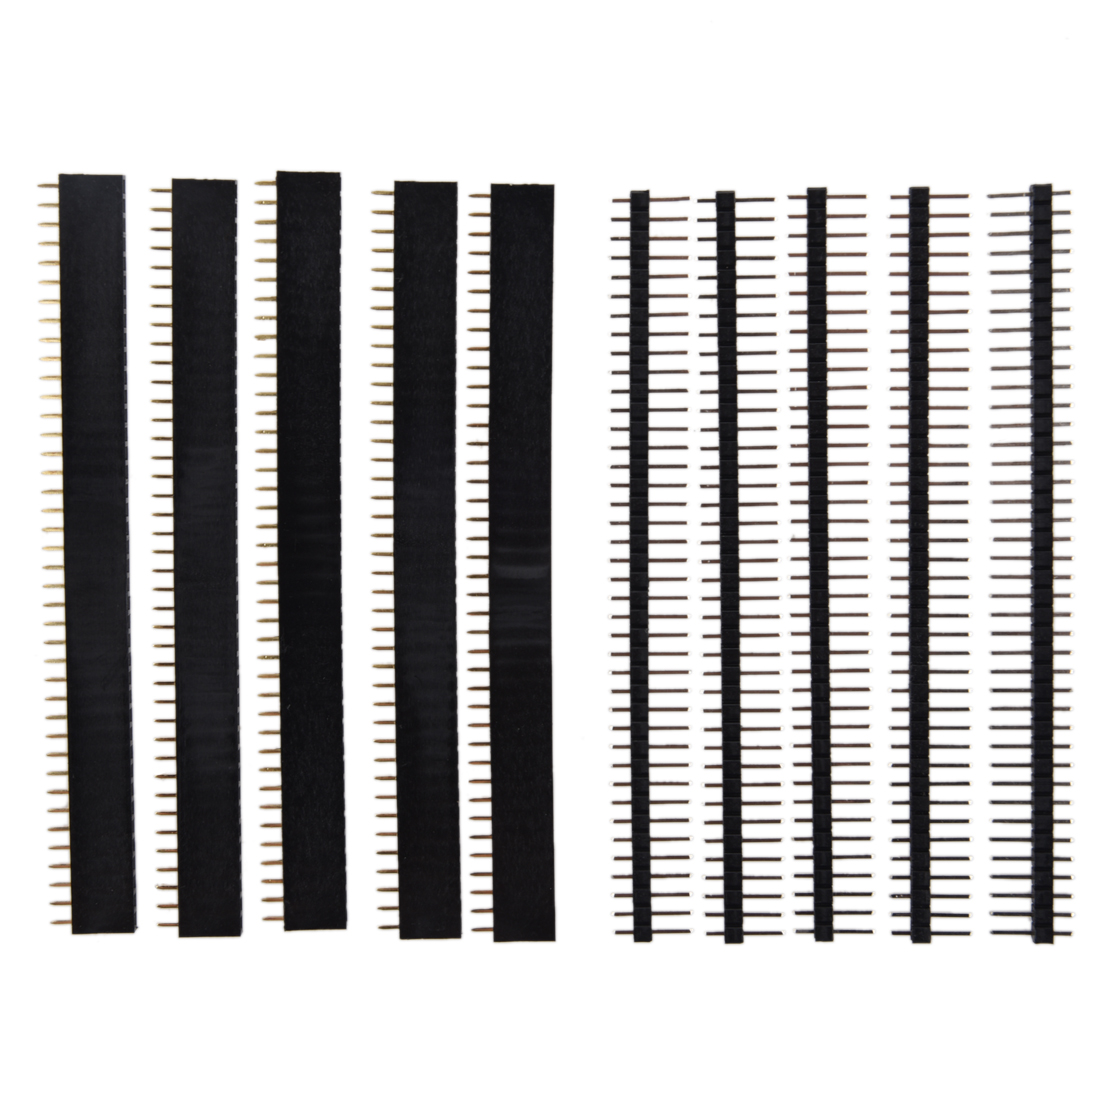 5 PCS Pack 40 Pin 2.54mm Single Row Straight Male + Female Pin Header Strip black 2 pcs new 2 54mm pitch 2x20 pin 40 pin female double row long pin header strip pc104 page 5